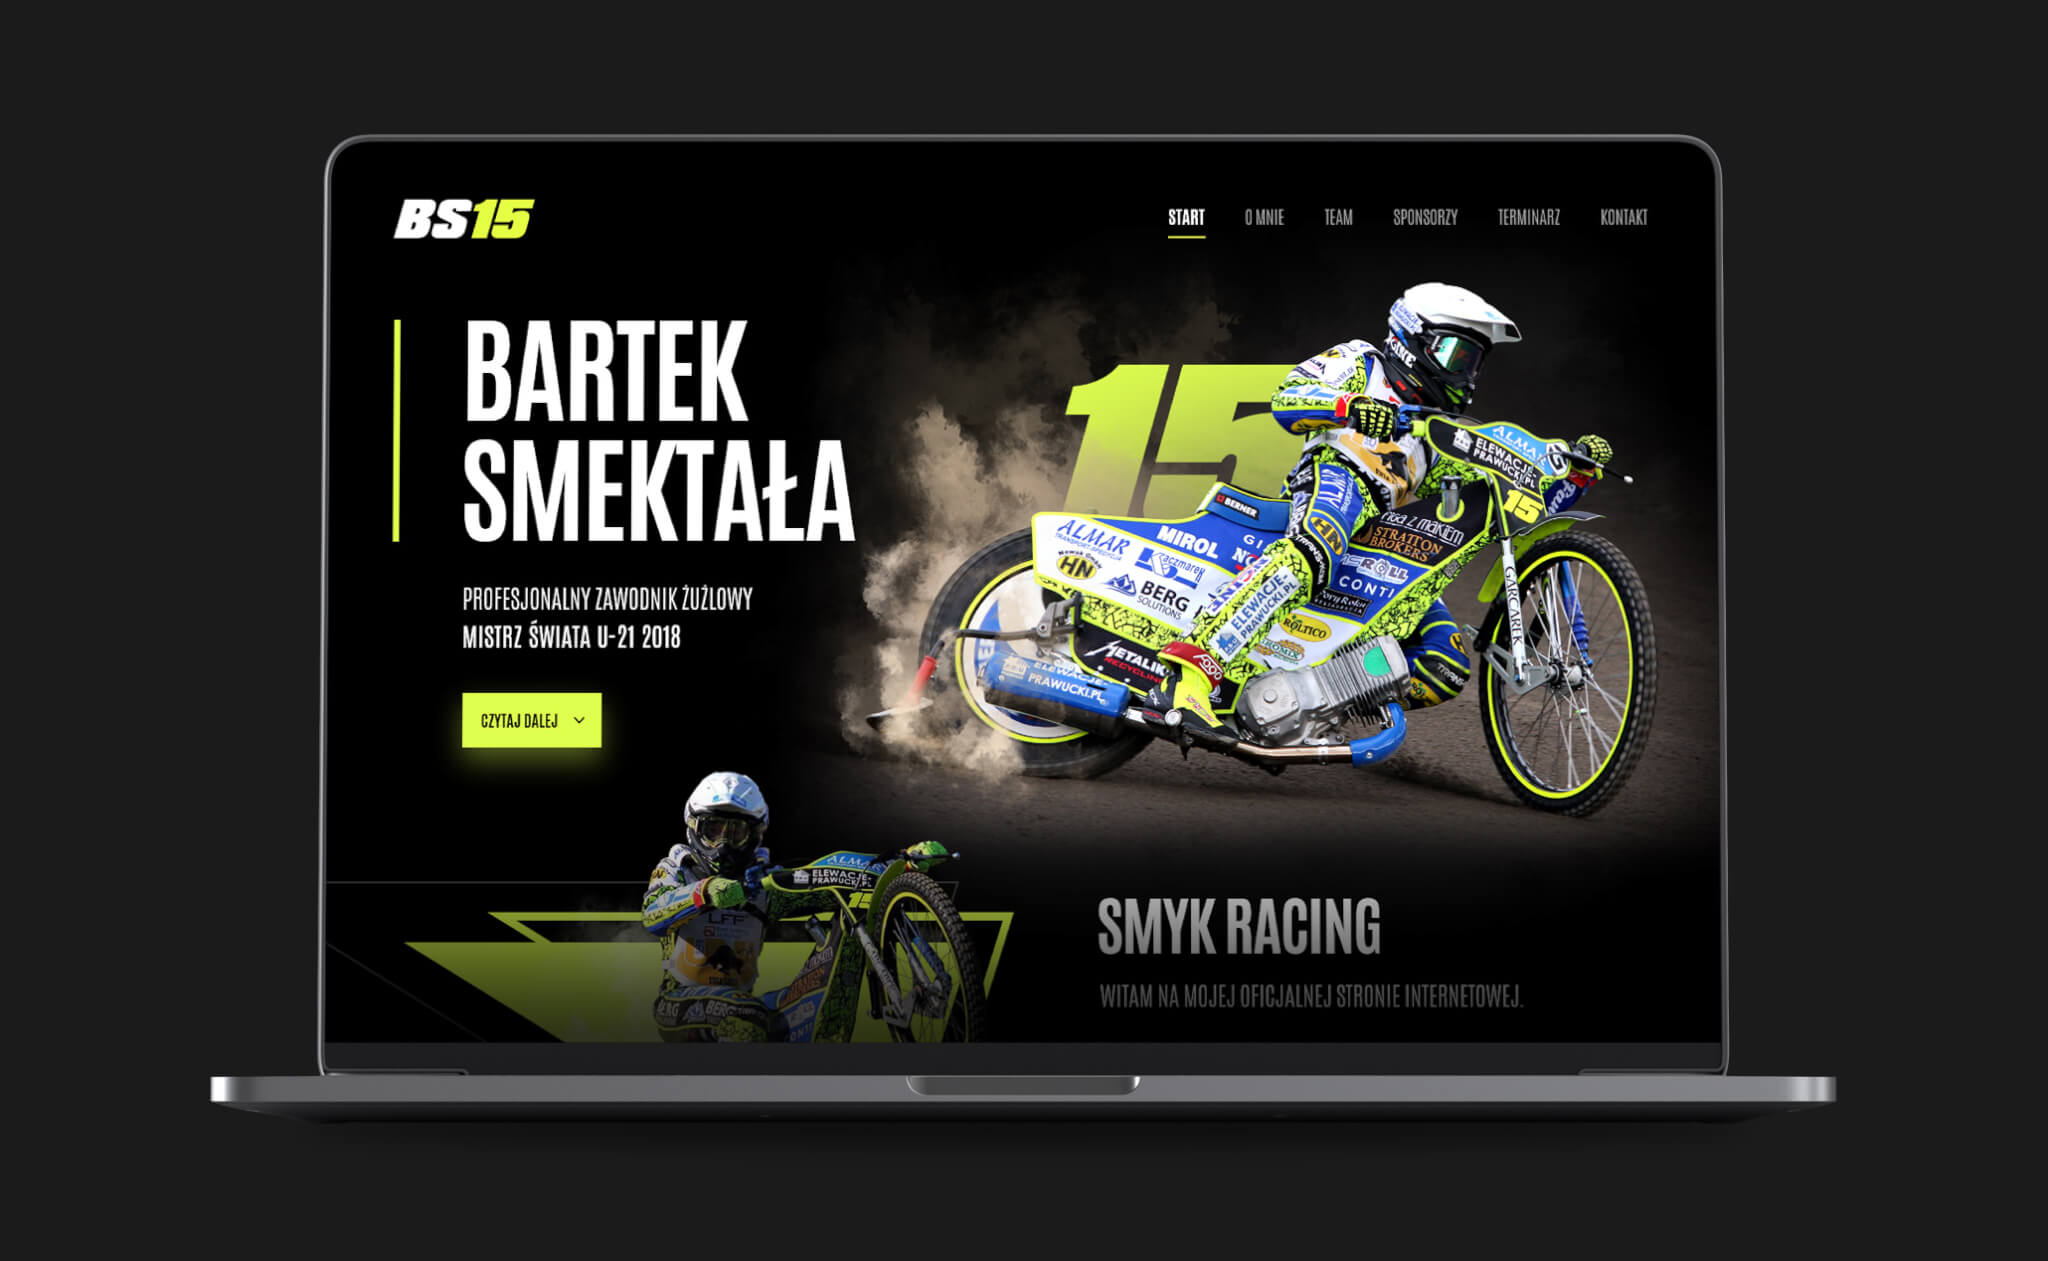 Bartek Smektała website project